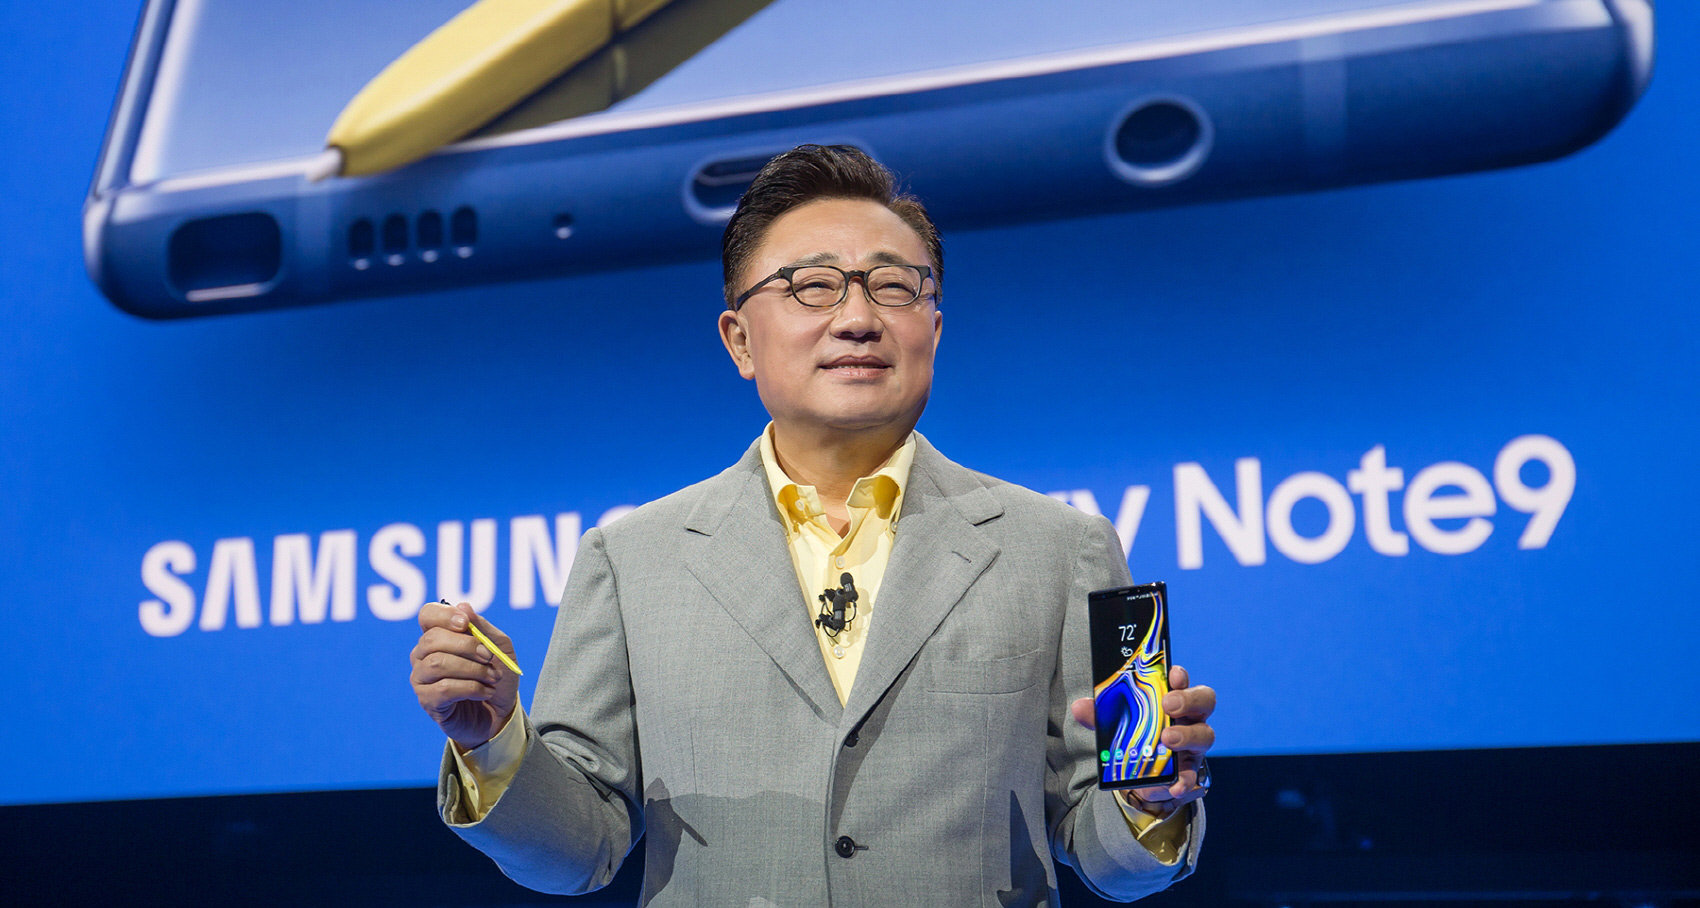 Samung president DJ Koh showing off Note 9 at the Unpacked event in New York City